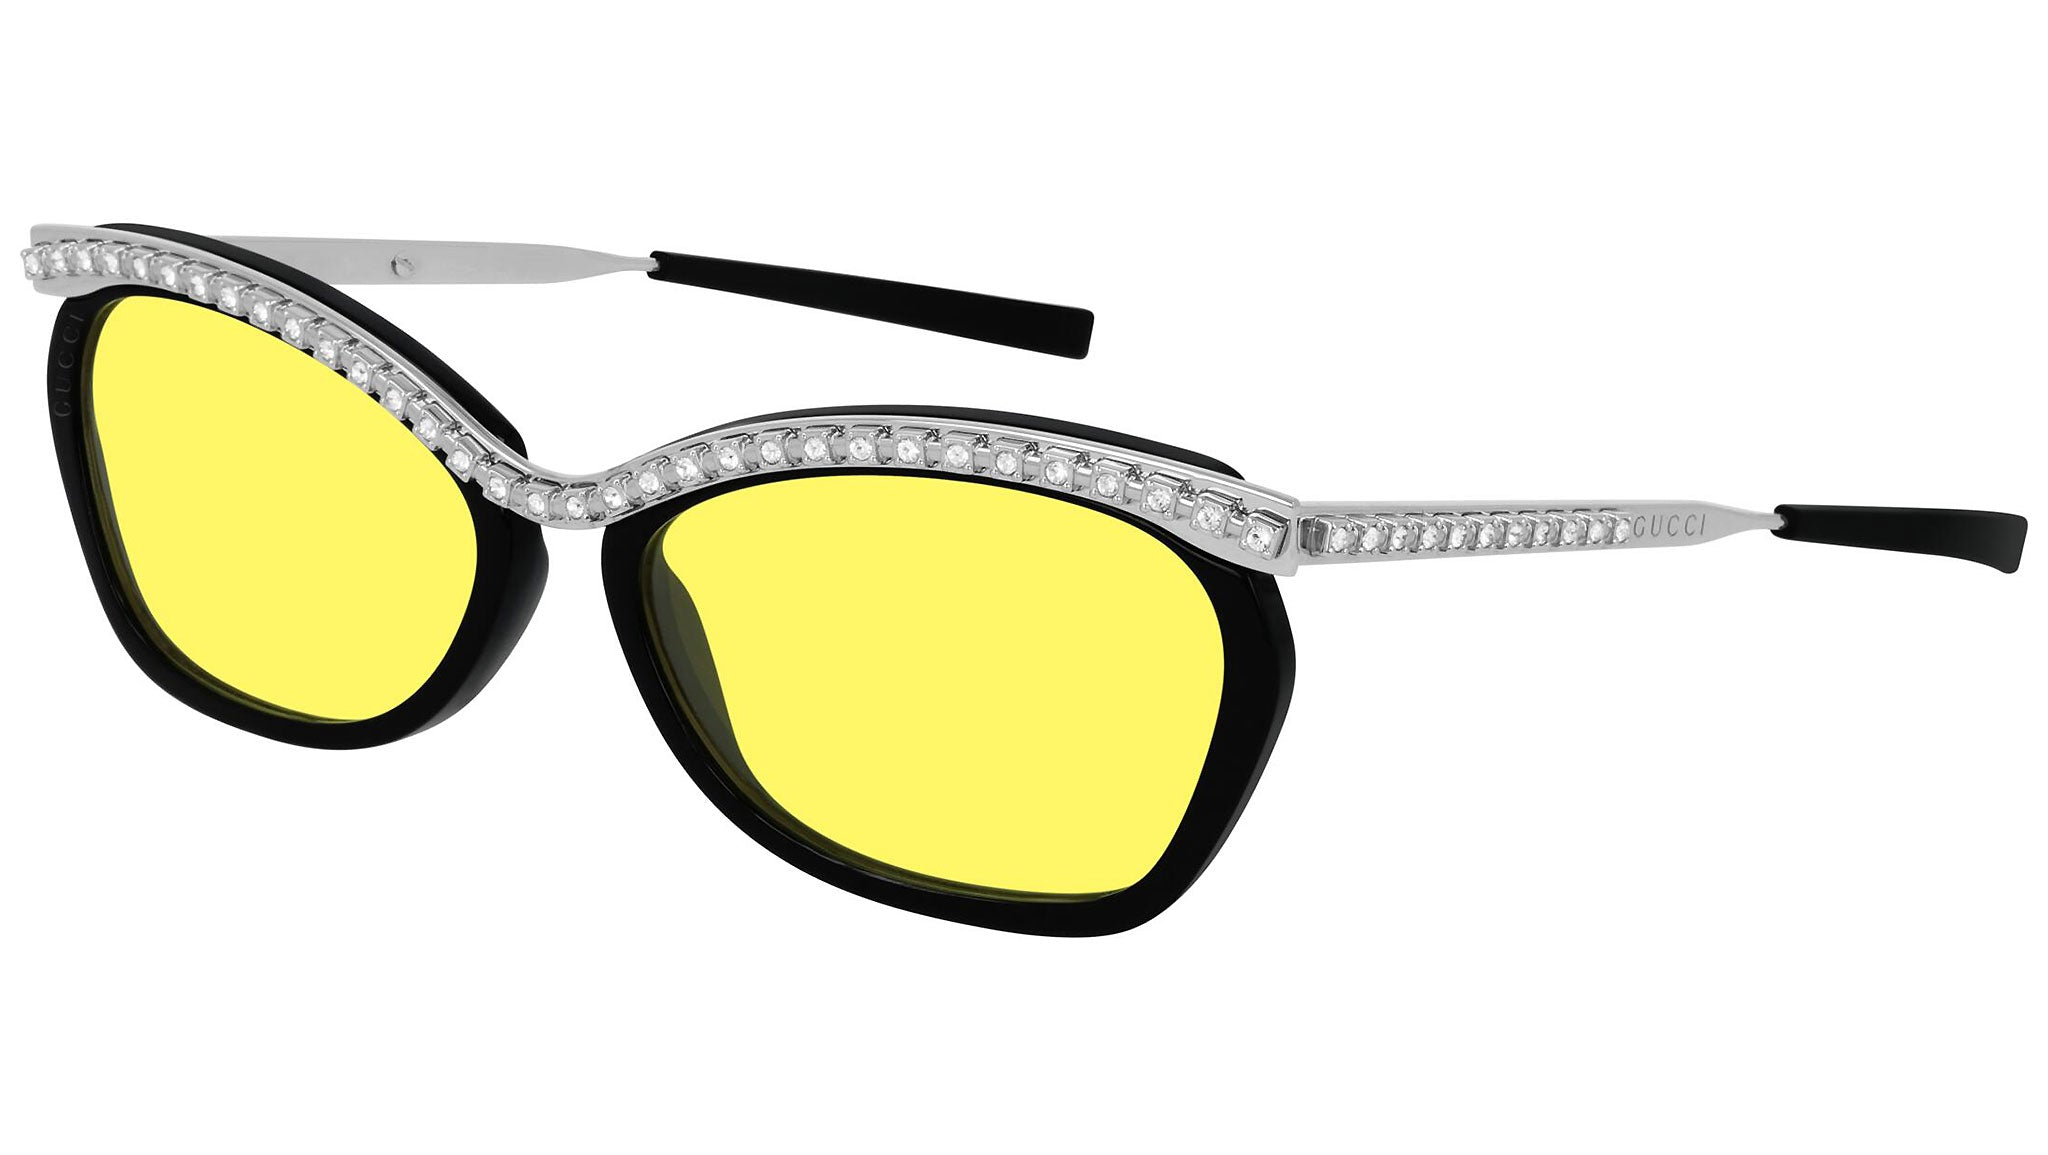 GG0617S crystal black and bright yellow